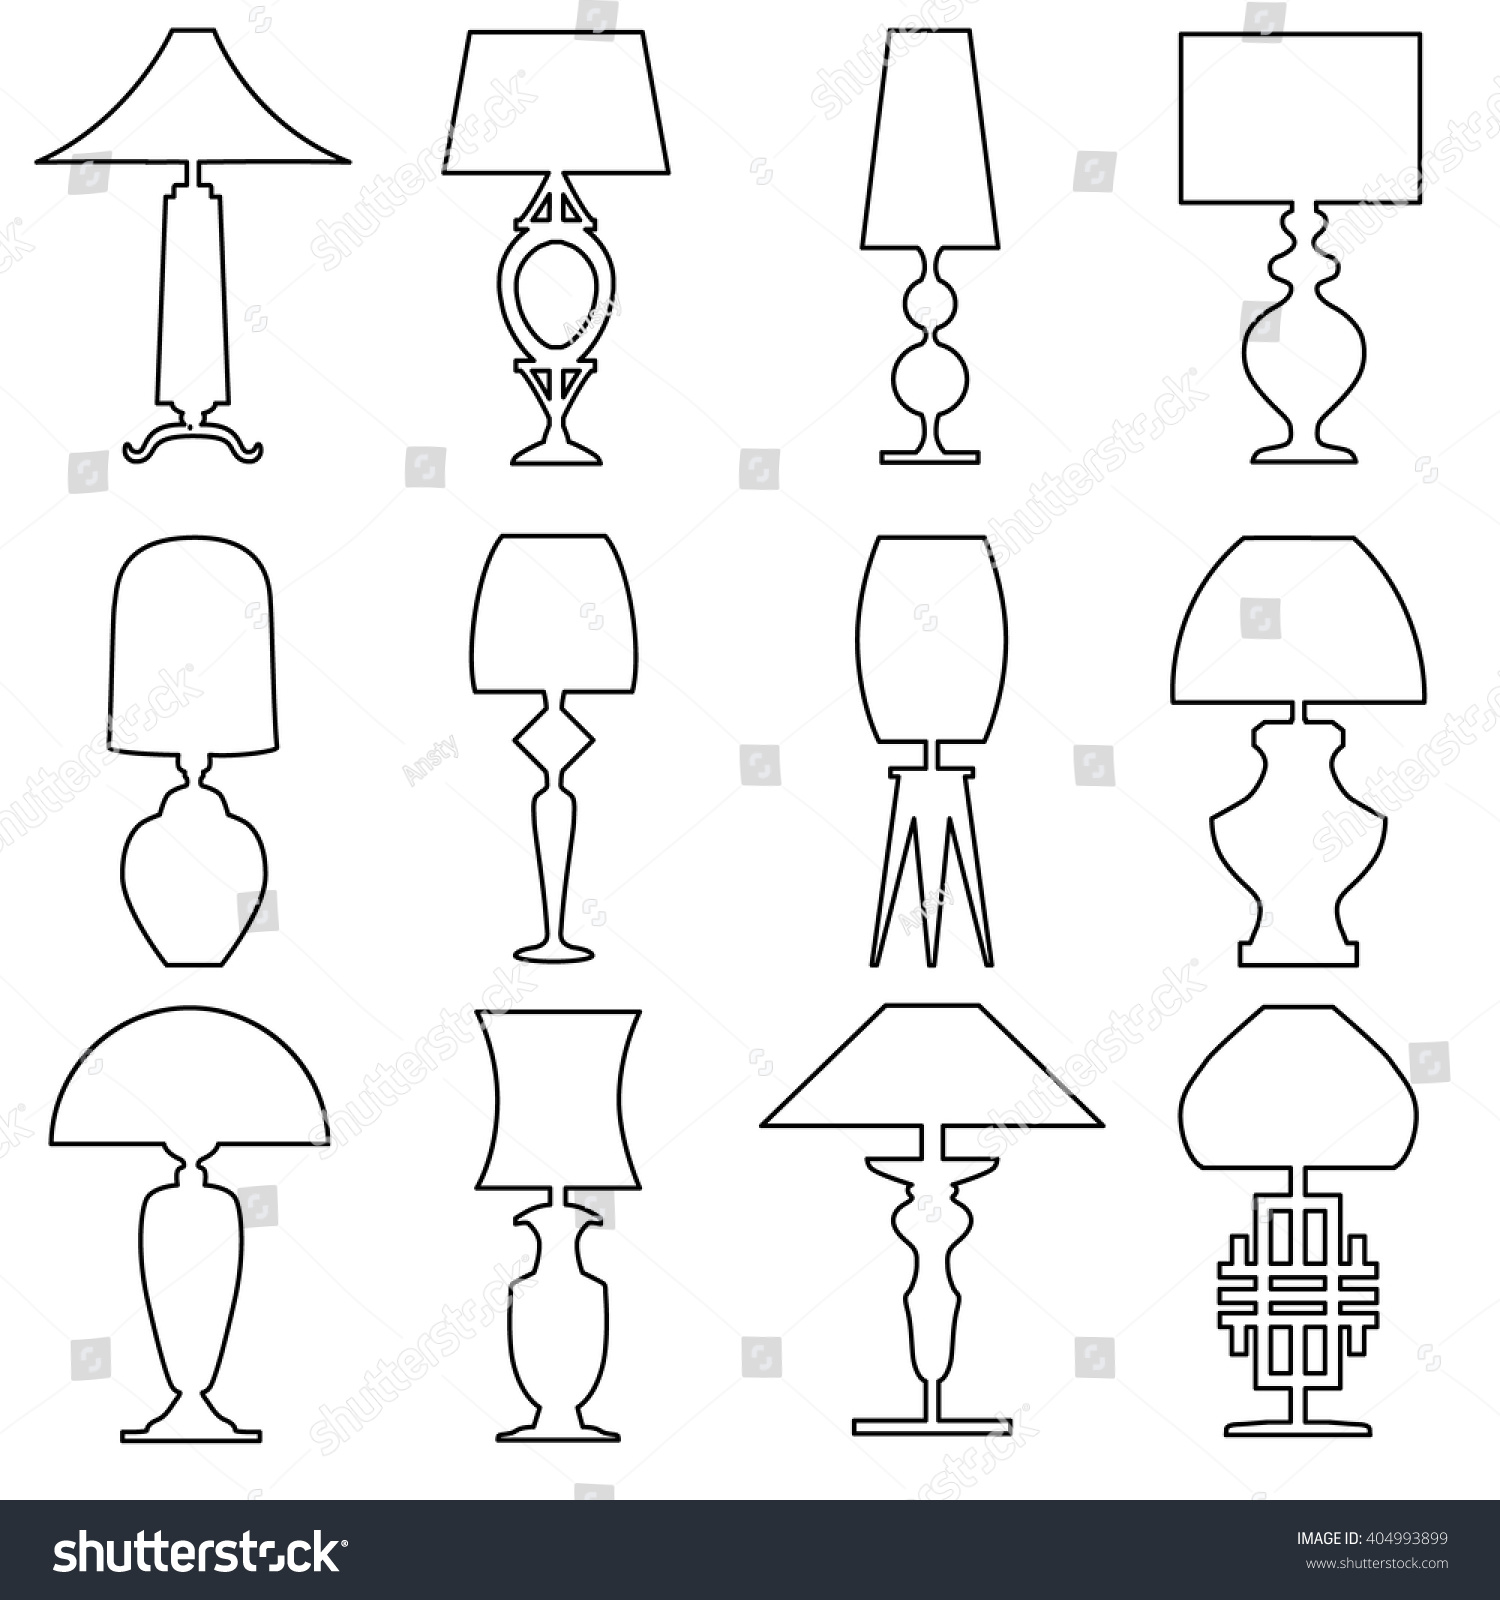 Table lamp for drawing - Set Of Lamp Outline Icon Isolated On White Background Collection Of Vector Drawing Icons Of